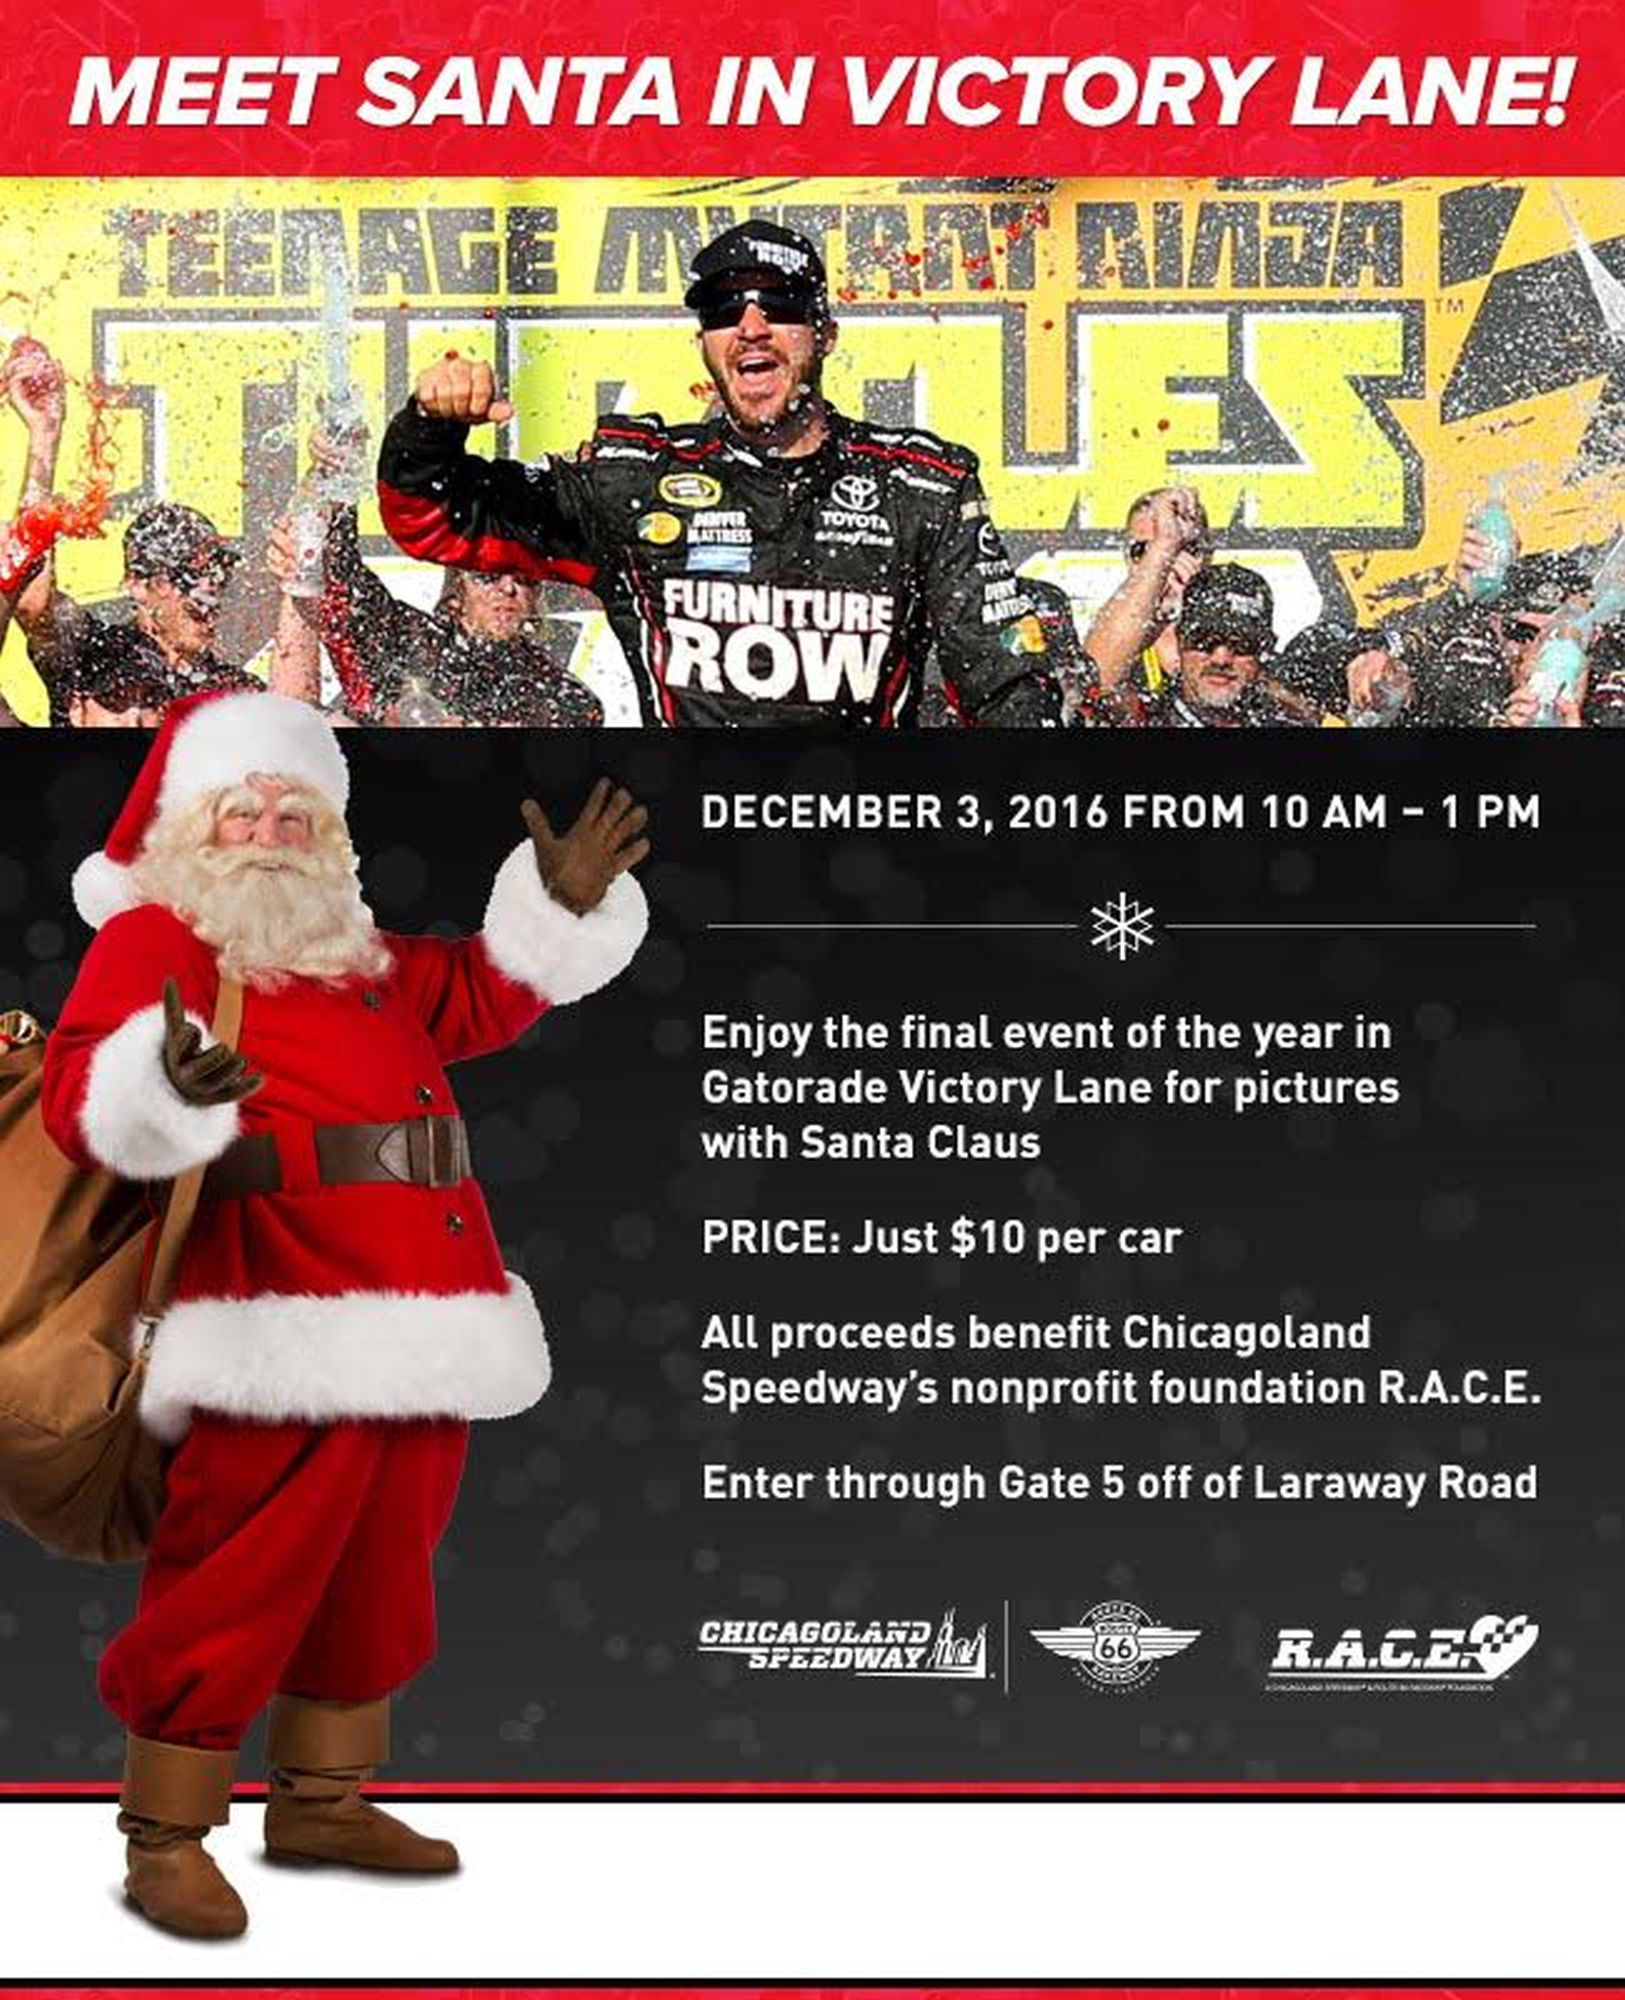 Chicagoland Speedway to provide additional activities during Santa ...